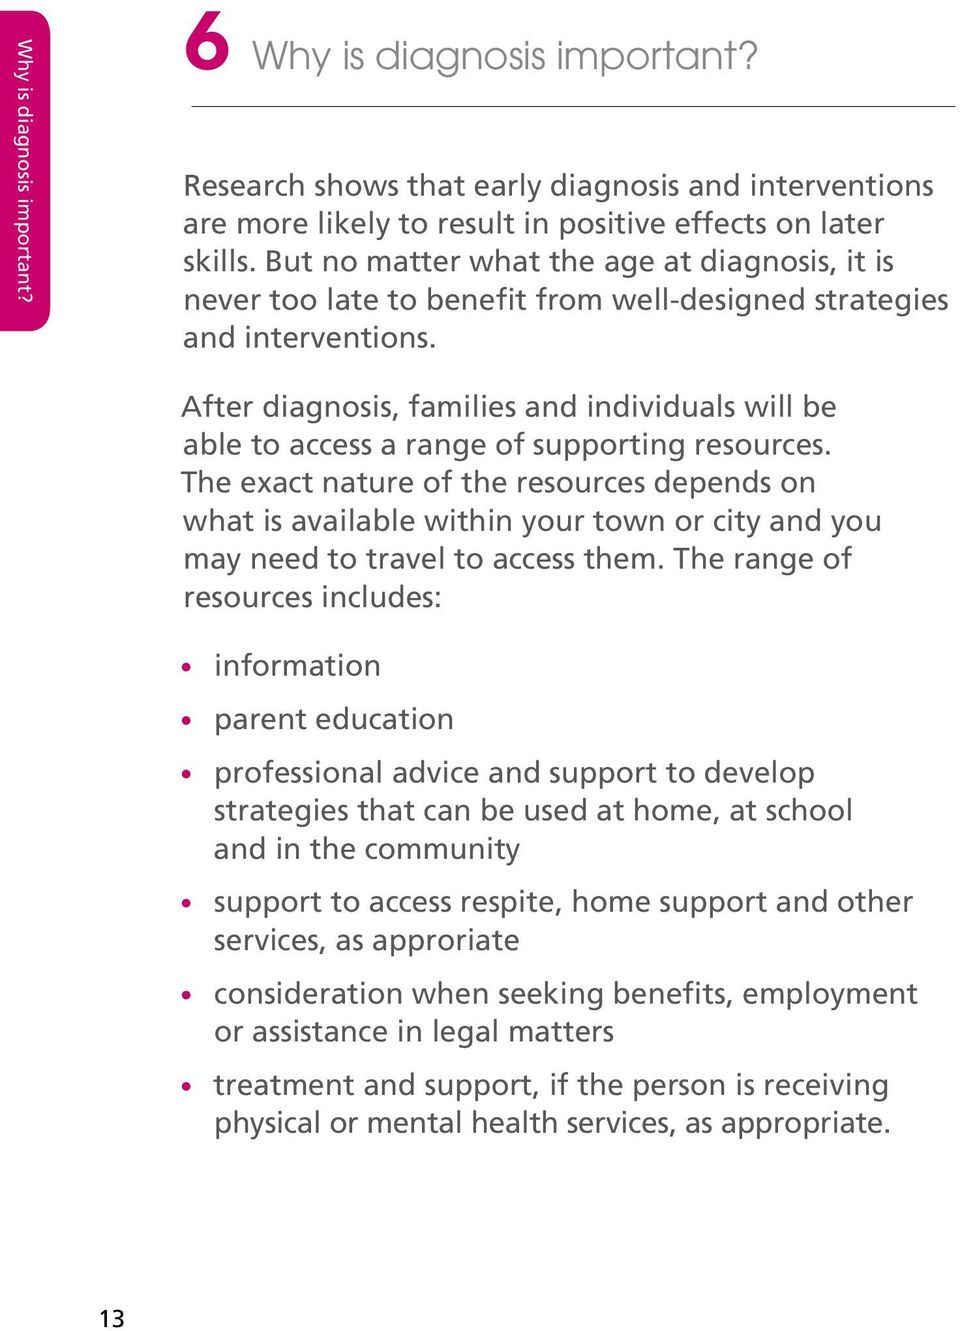 After diagnosis, families and individuals will be able to access a range of supporting resources.